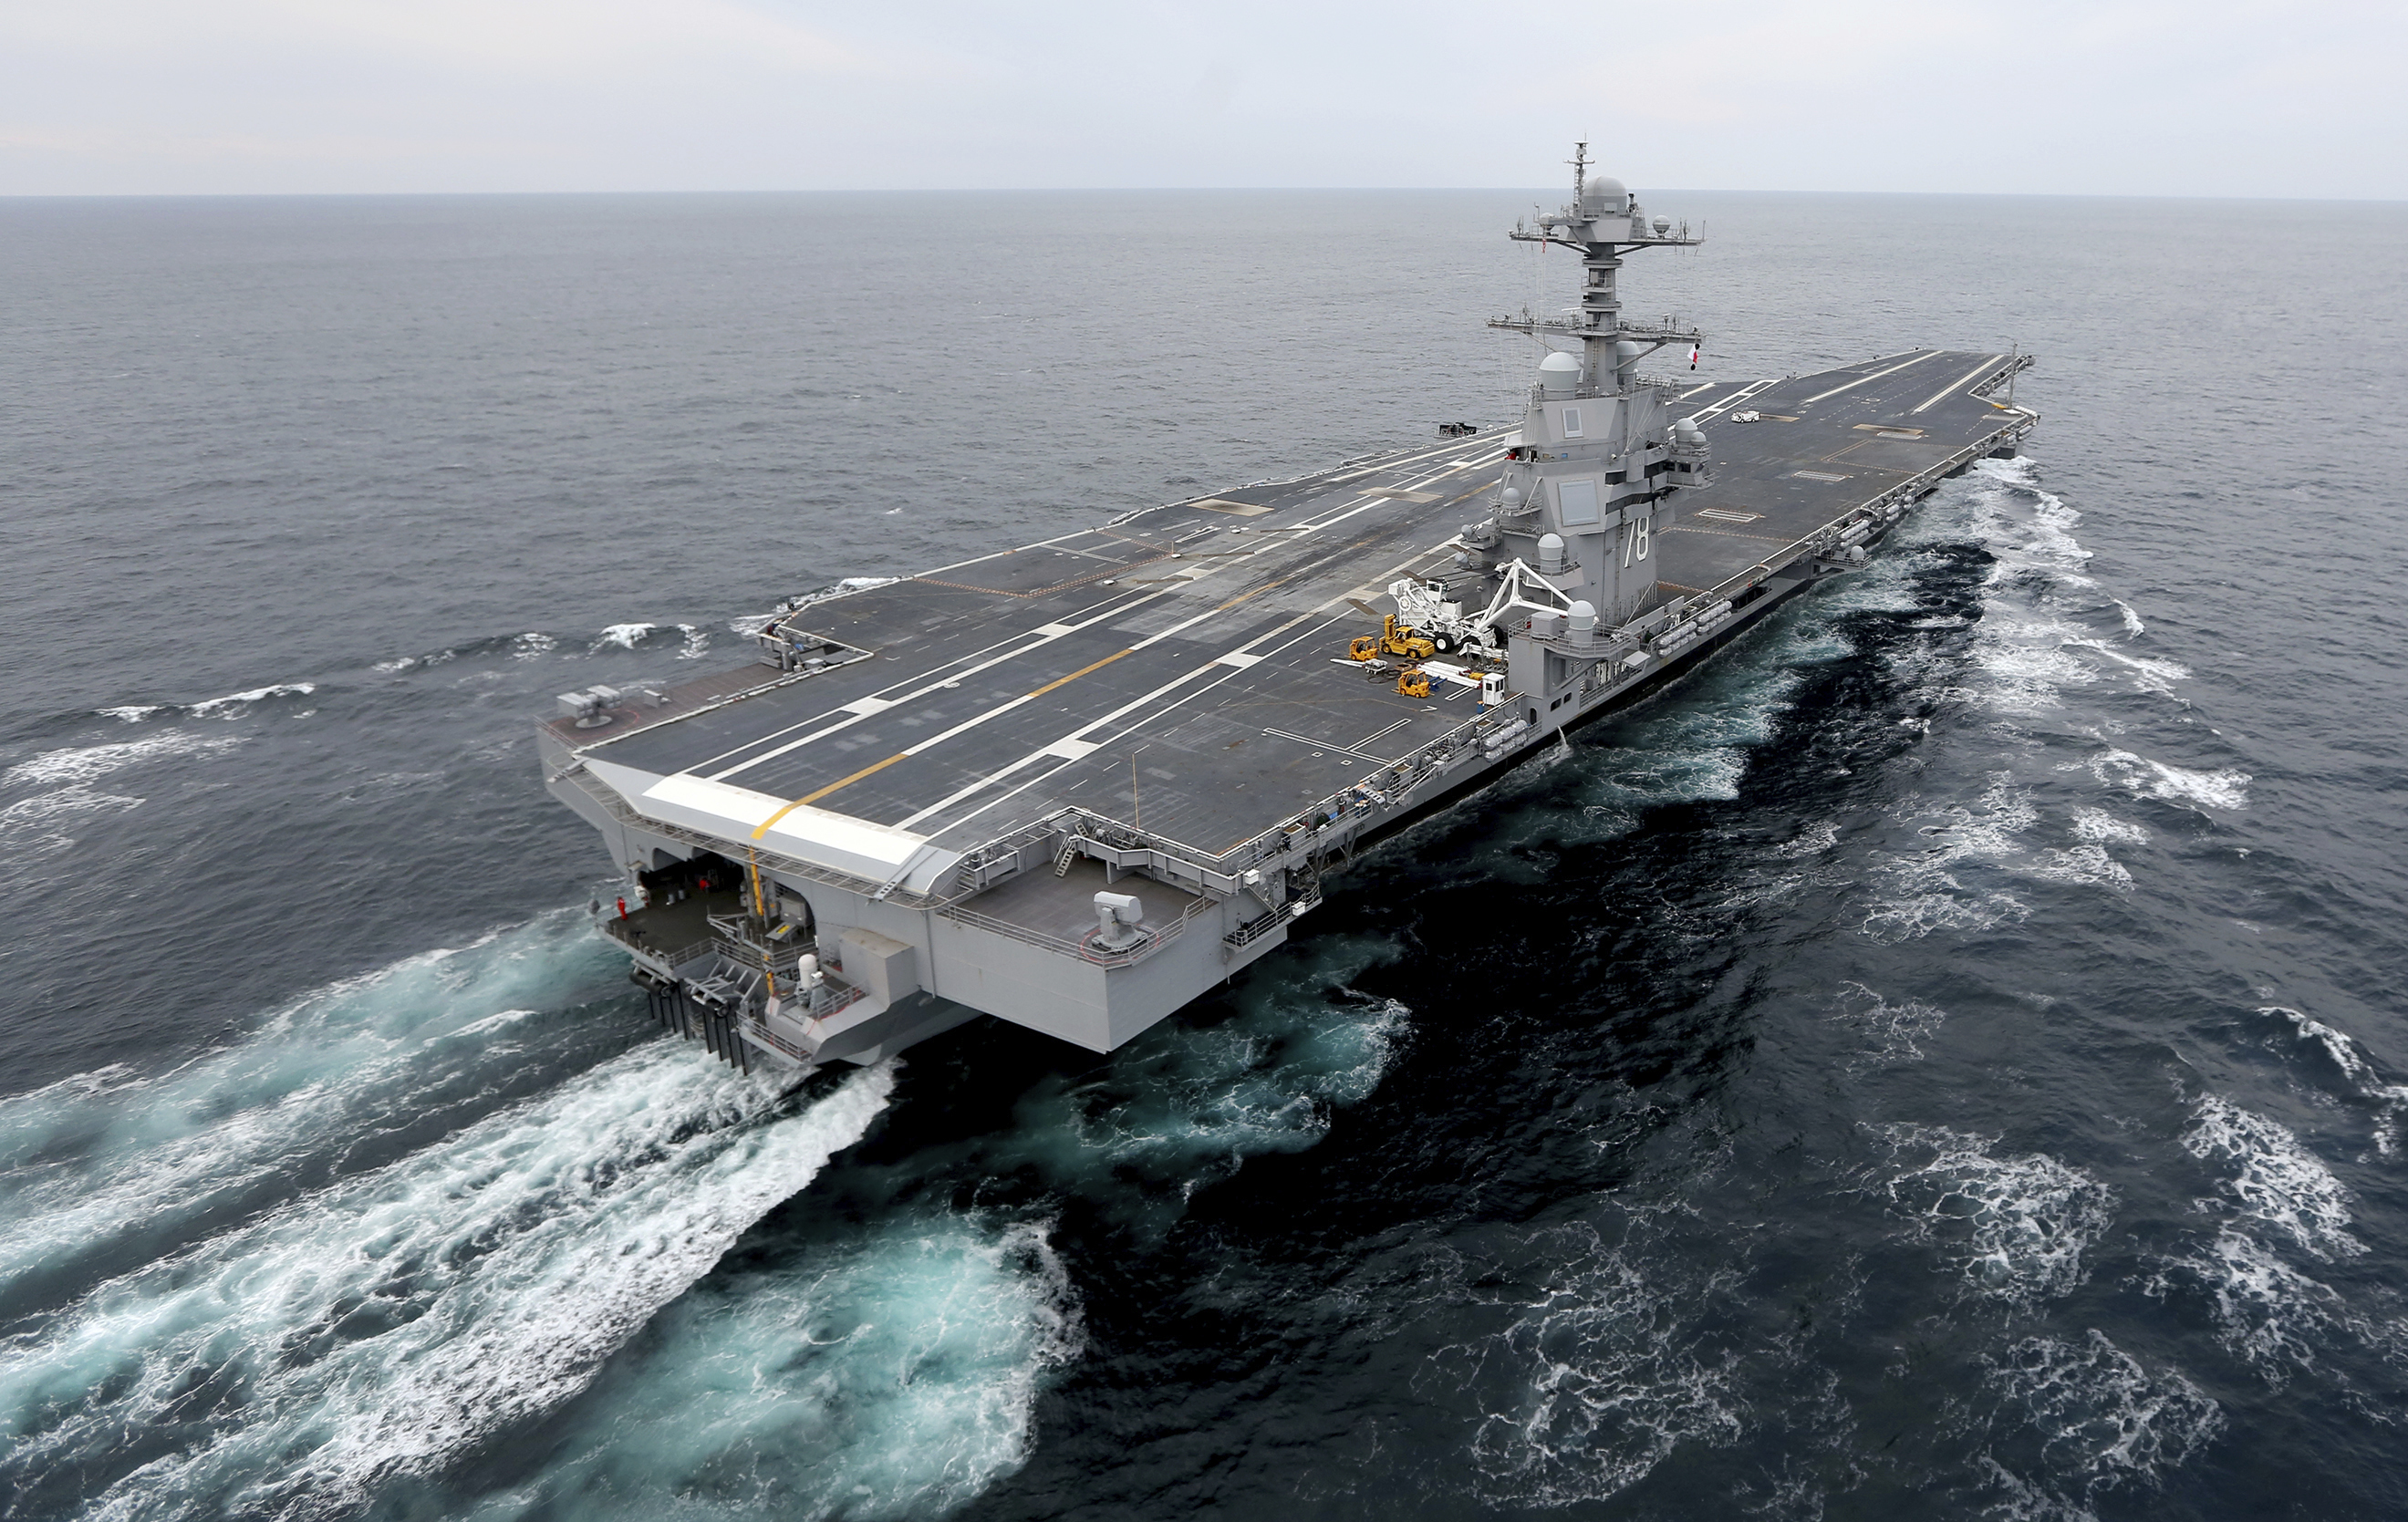 Navy weighs adding extra fighters to amphibious ships due to carrier s